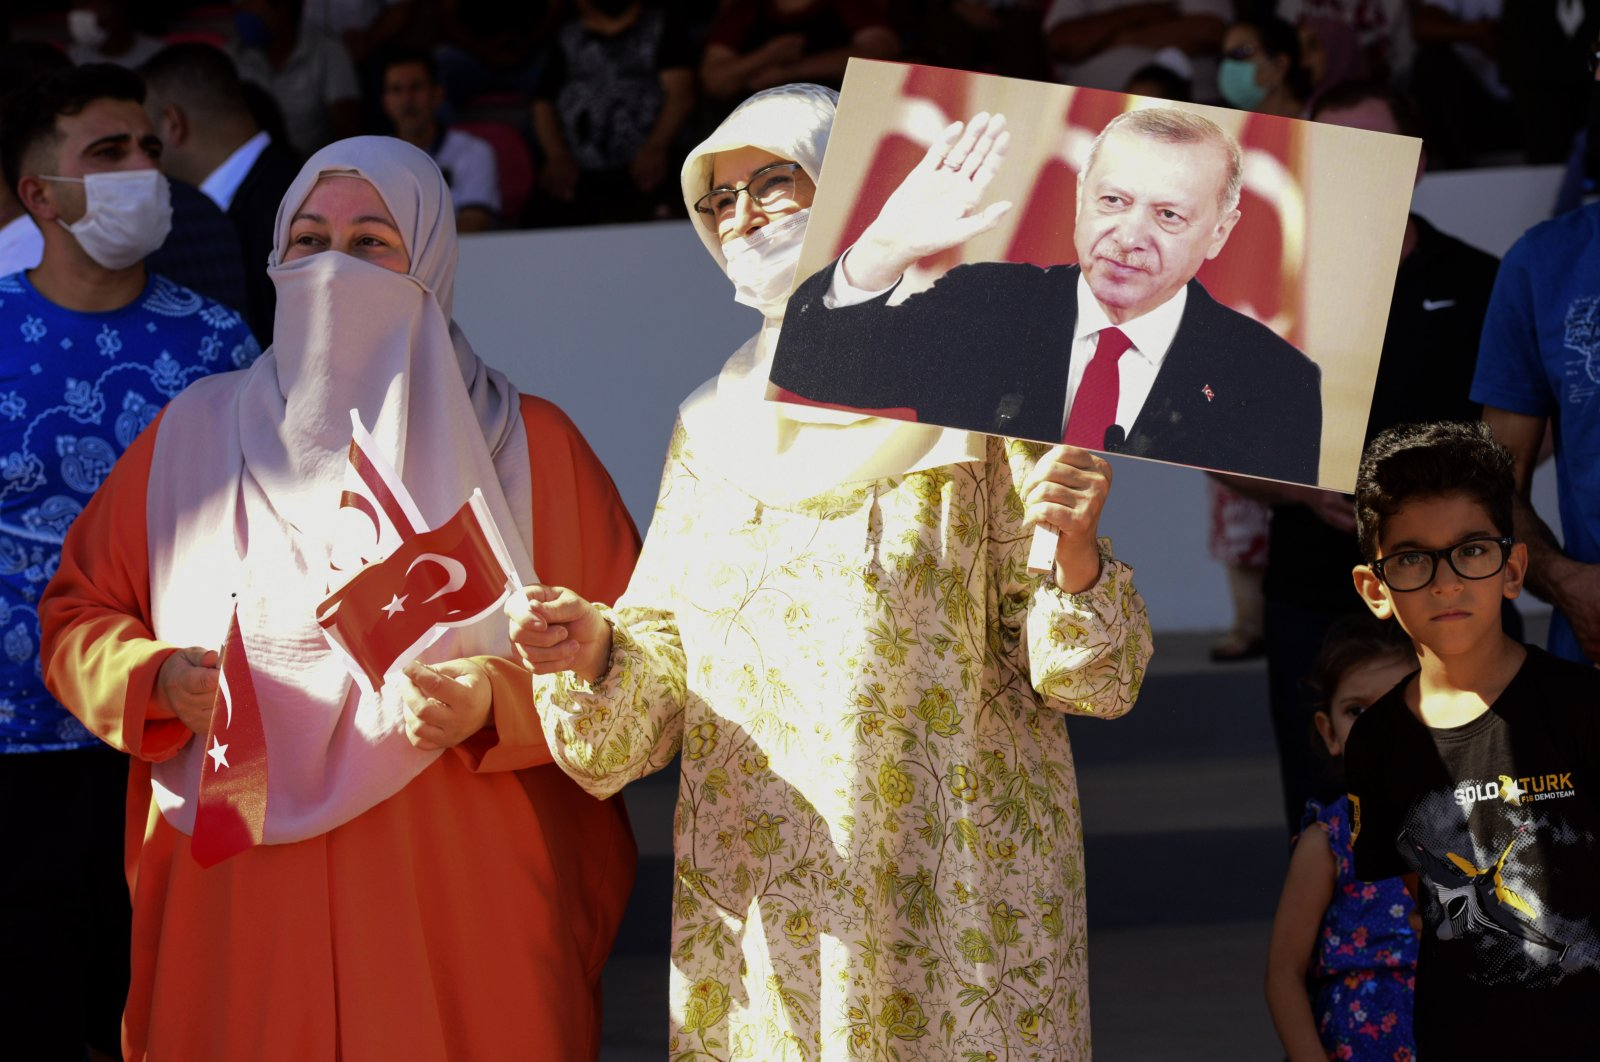 A Turkish woman (R) holds a portrait of Turkish President Recep Tayyip Erdoğan as another woman holds a Turkish flag during the military parade marking the Peace Operation that took place on July 20, 1974, in Lefkoşa (Nicosia), Turkish Cyprus, July 20, 2021. (AP Photo)